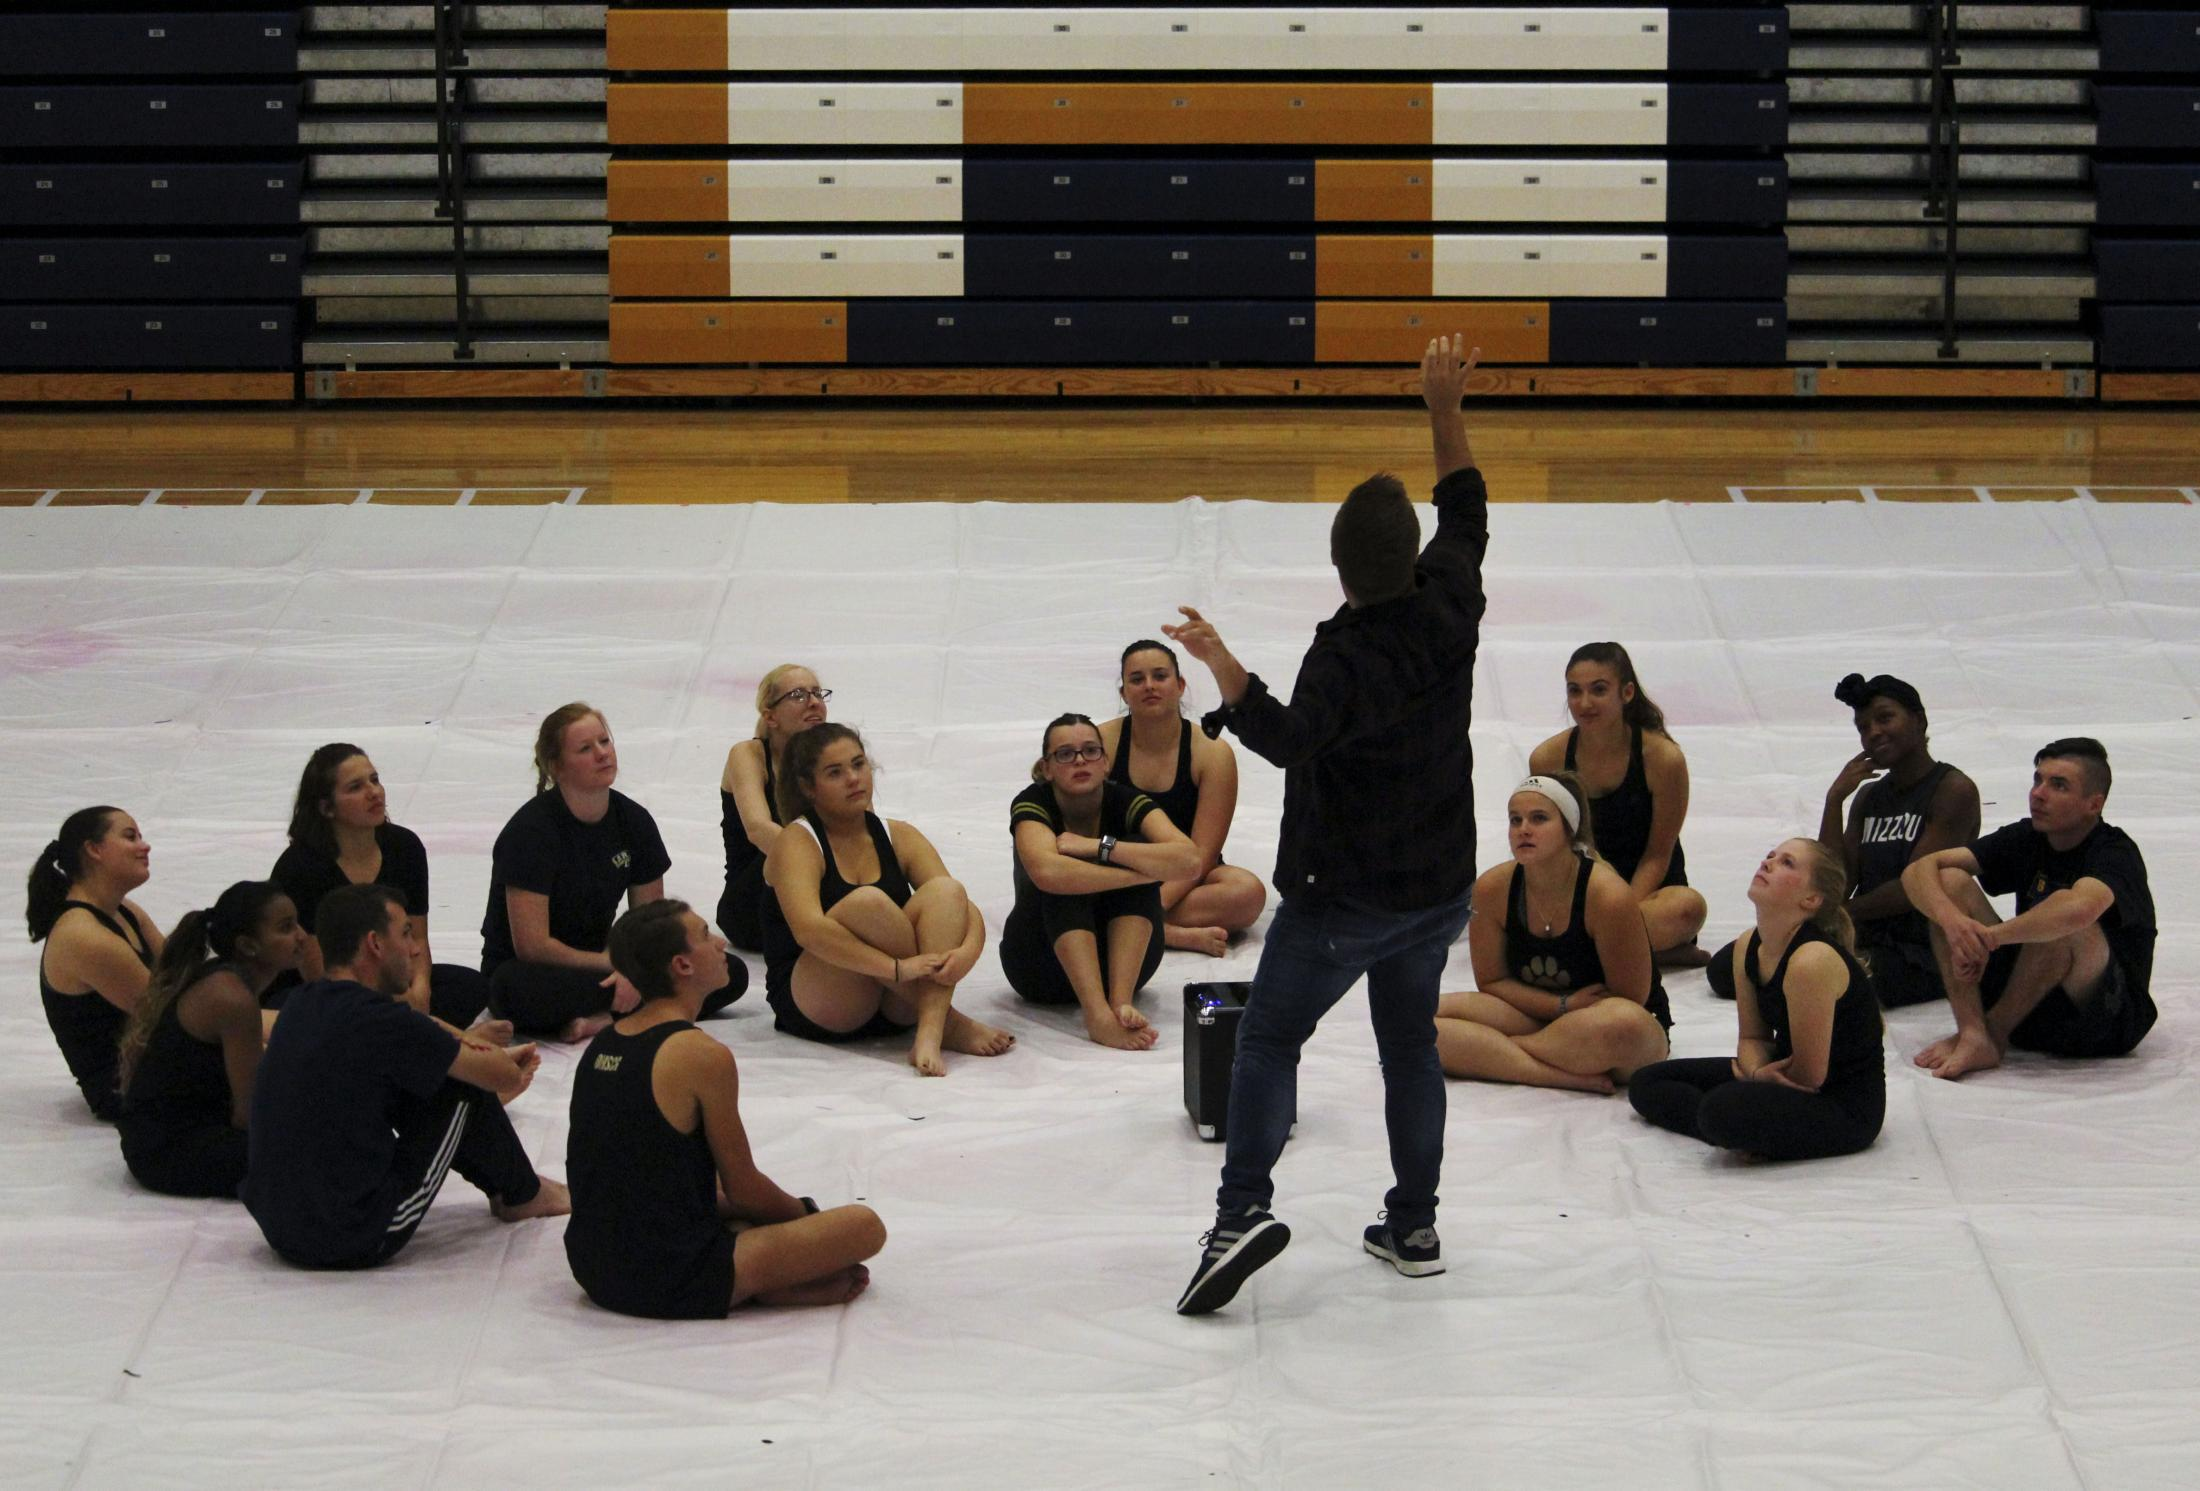 """Zachary Barber, design coach for Ionic Independent, demonstrates his vision for its 2020 show during the first meeting November 1, 2020, at Battle High School in Columbia, Missouri. On this day, members also learned that their show would be titled 'The Artistry of Motif' and follows the ideas of motifs and synchronicity in visuals, attitudes and routine. Barber discussed how he also wanted to follow the """"motif"""" of the team where each year the show is something simple but unique to the team members of that season."""